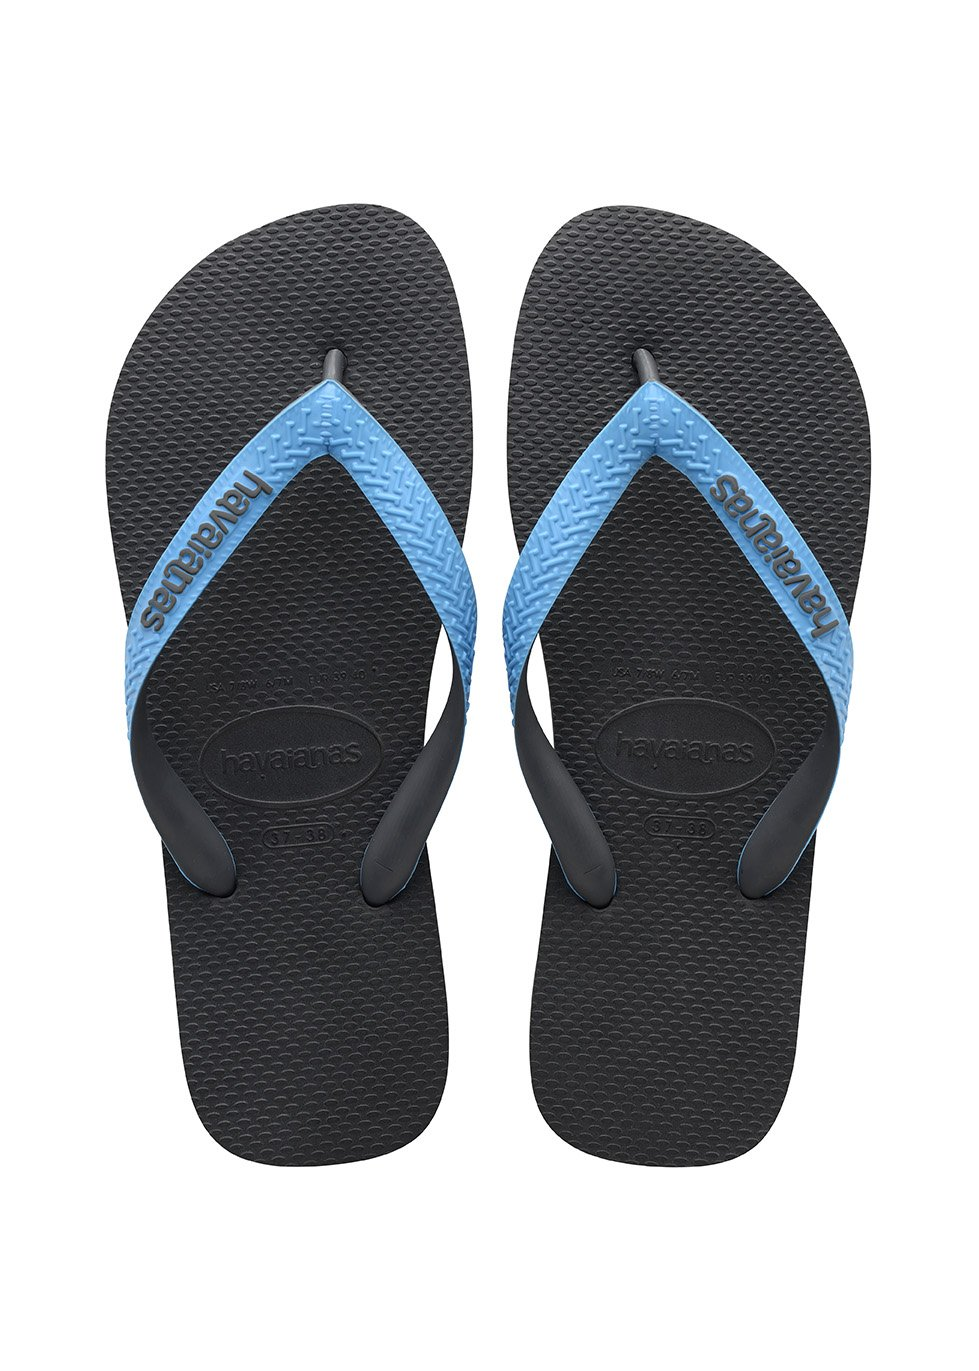 Havaianas Flip Flops Men/Women Top Mix 4115549